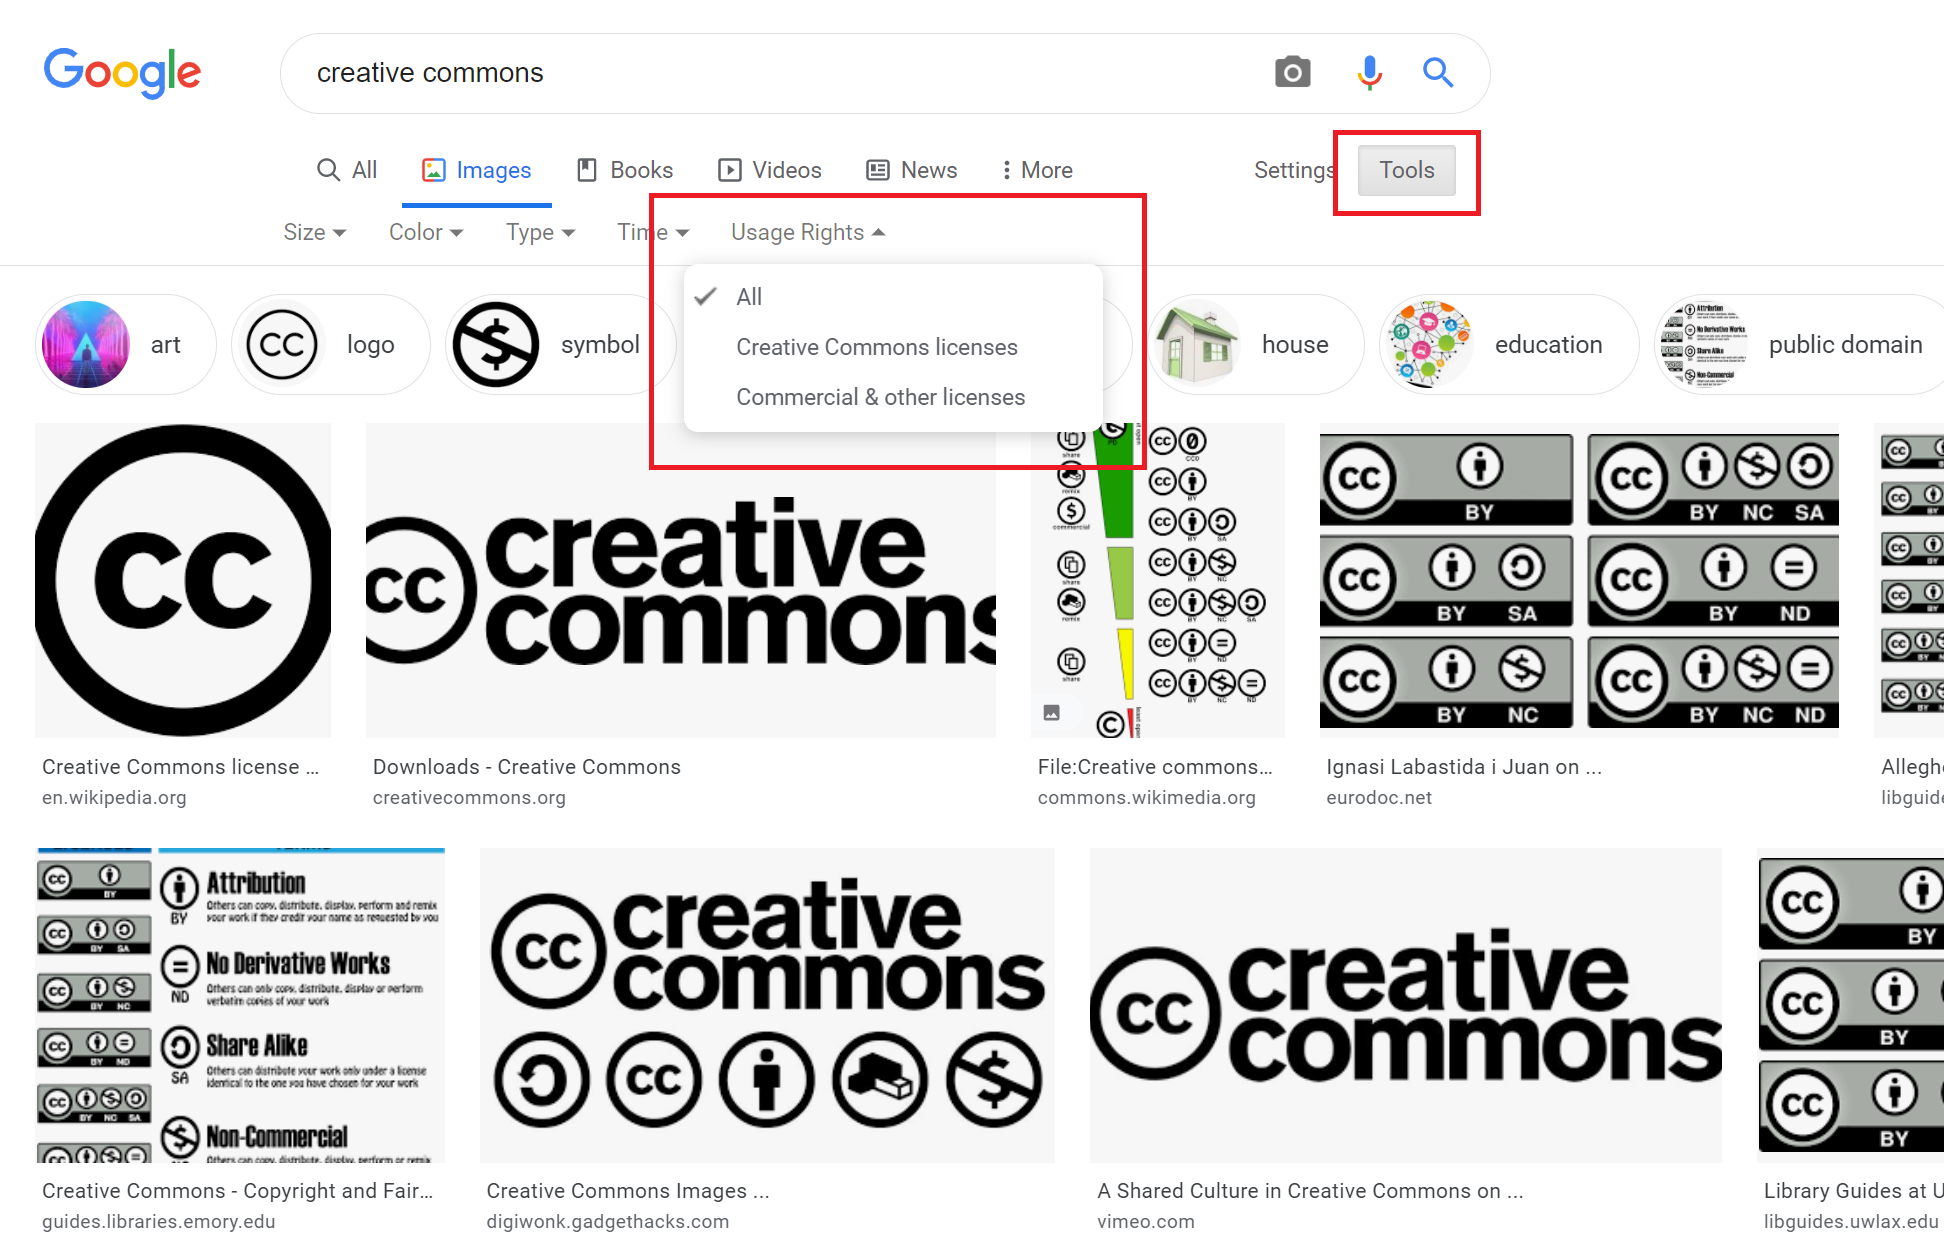 A screenshot of Google Image Search results showing how to filter to Creative Commons licensed material.